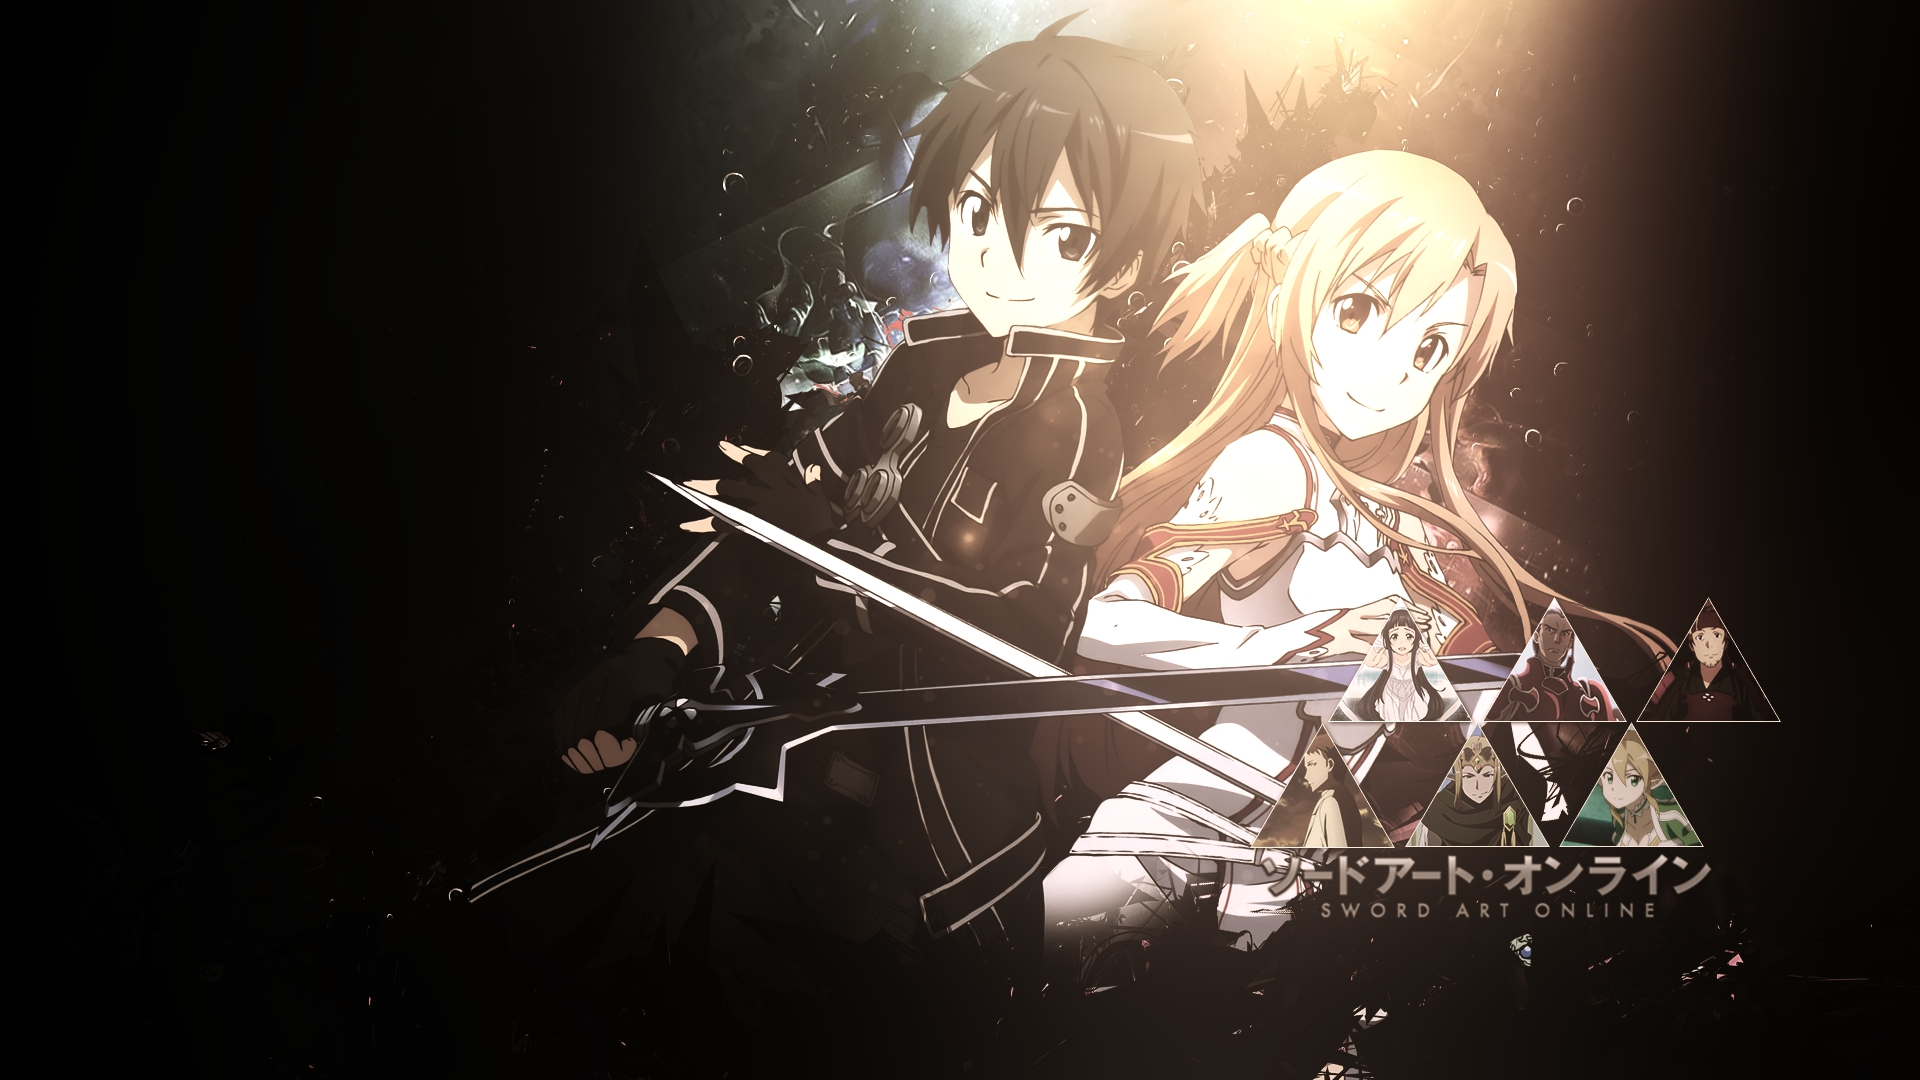 Sword Art Online Wallpaper HD